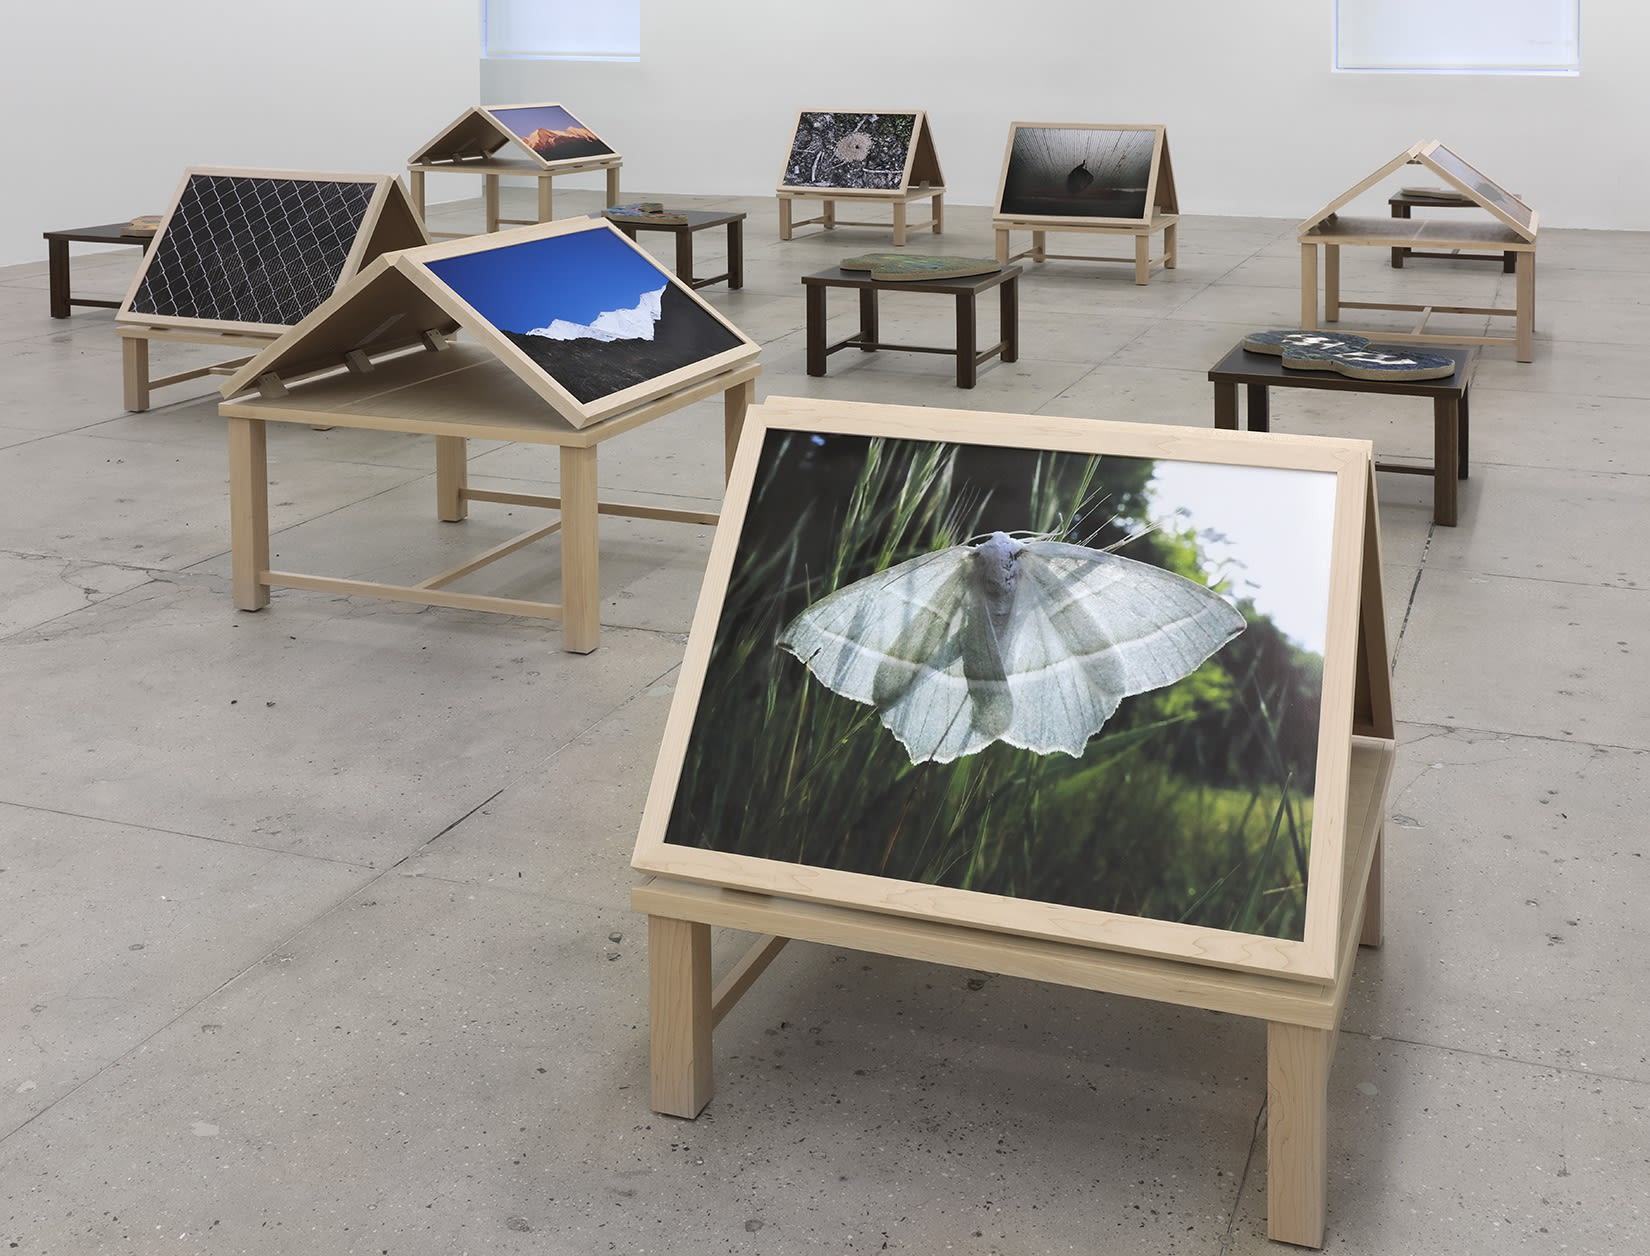 12 wooden platforms display color nature photographs and flat sculptures. In the foreground is a photograph of a white moth in grass.